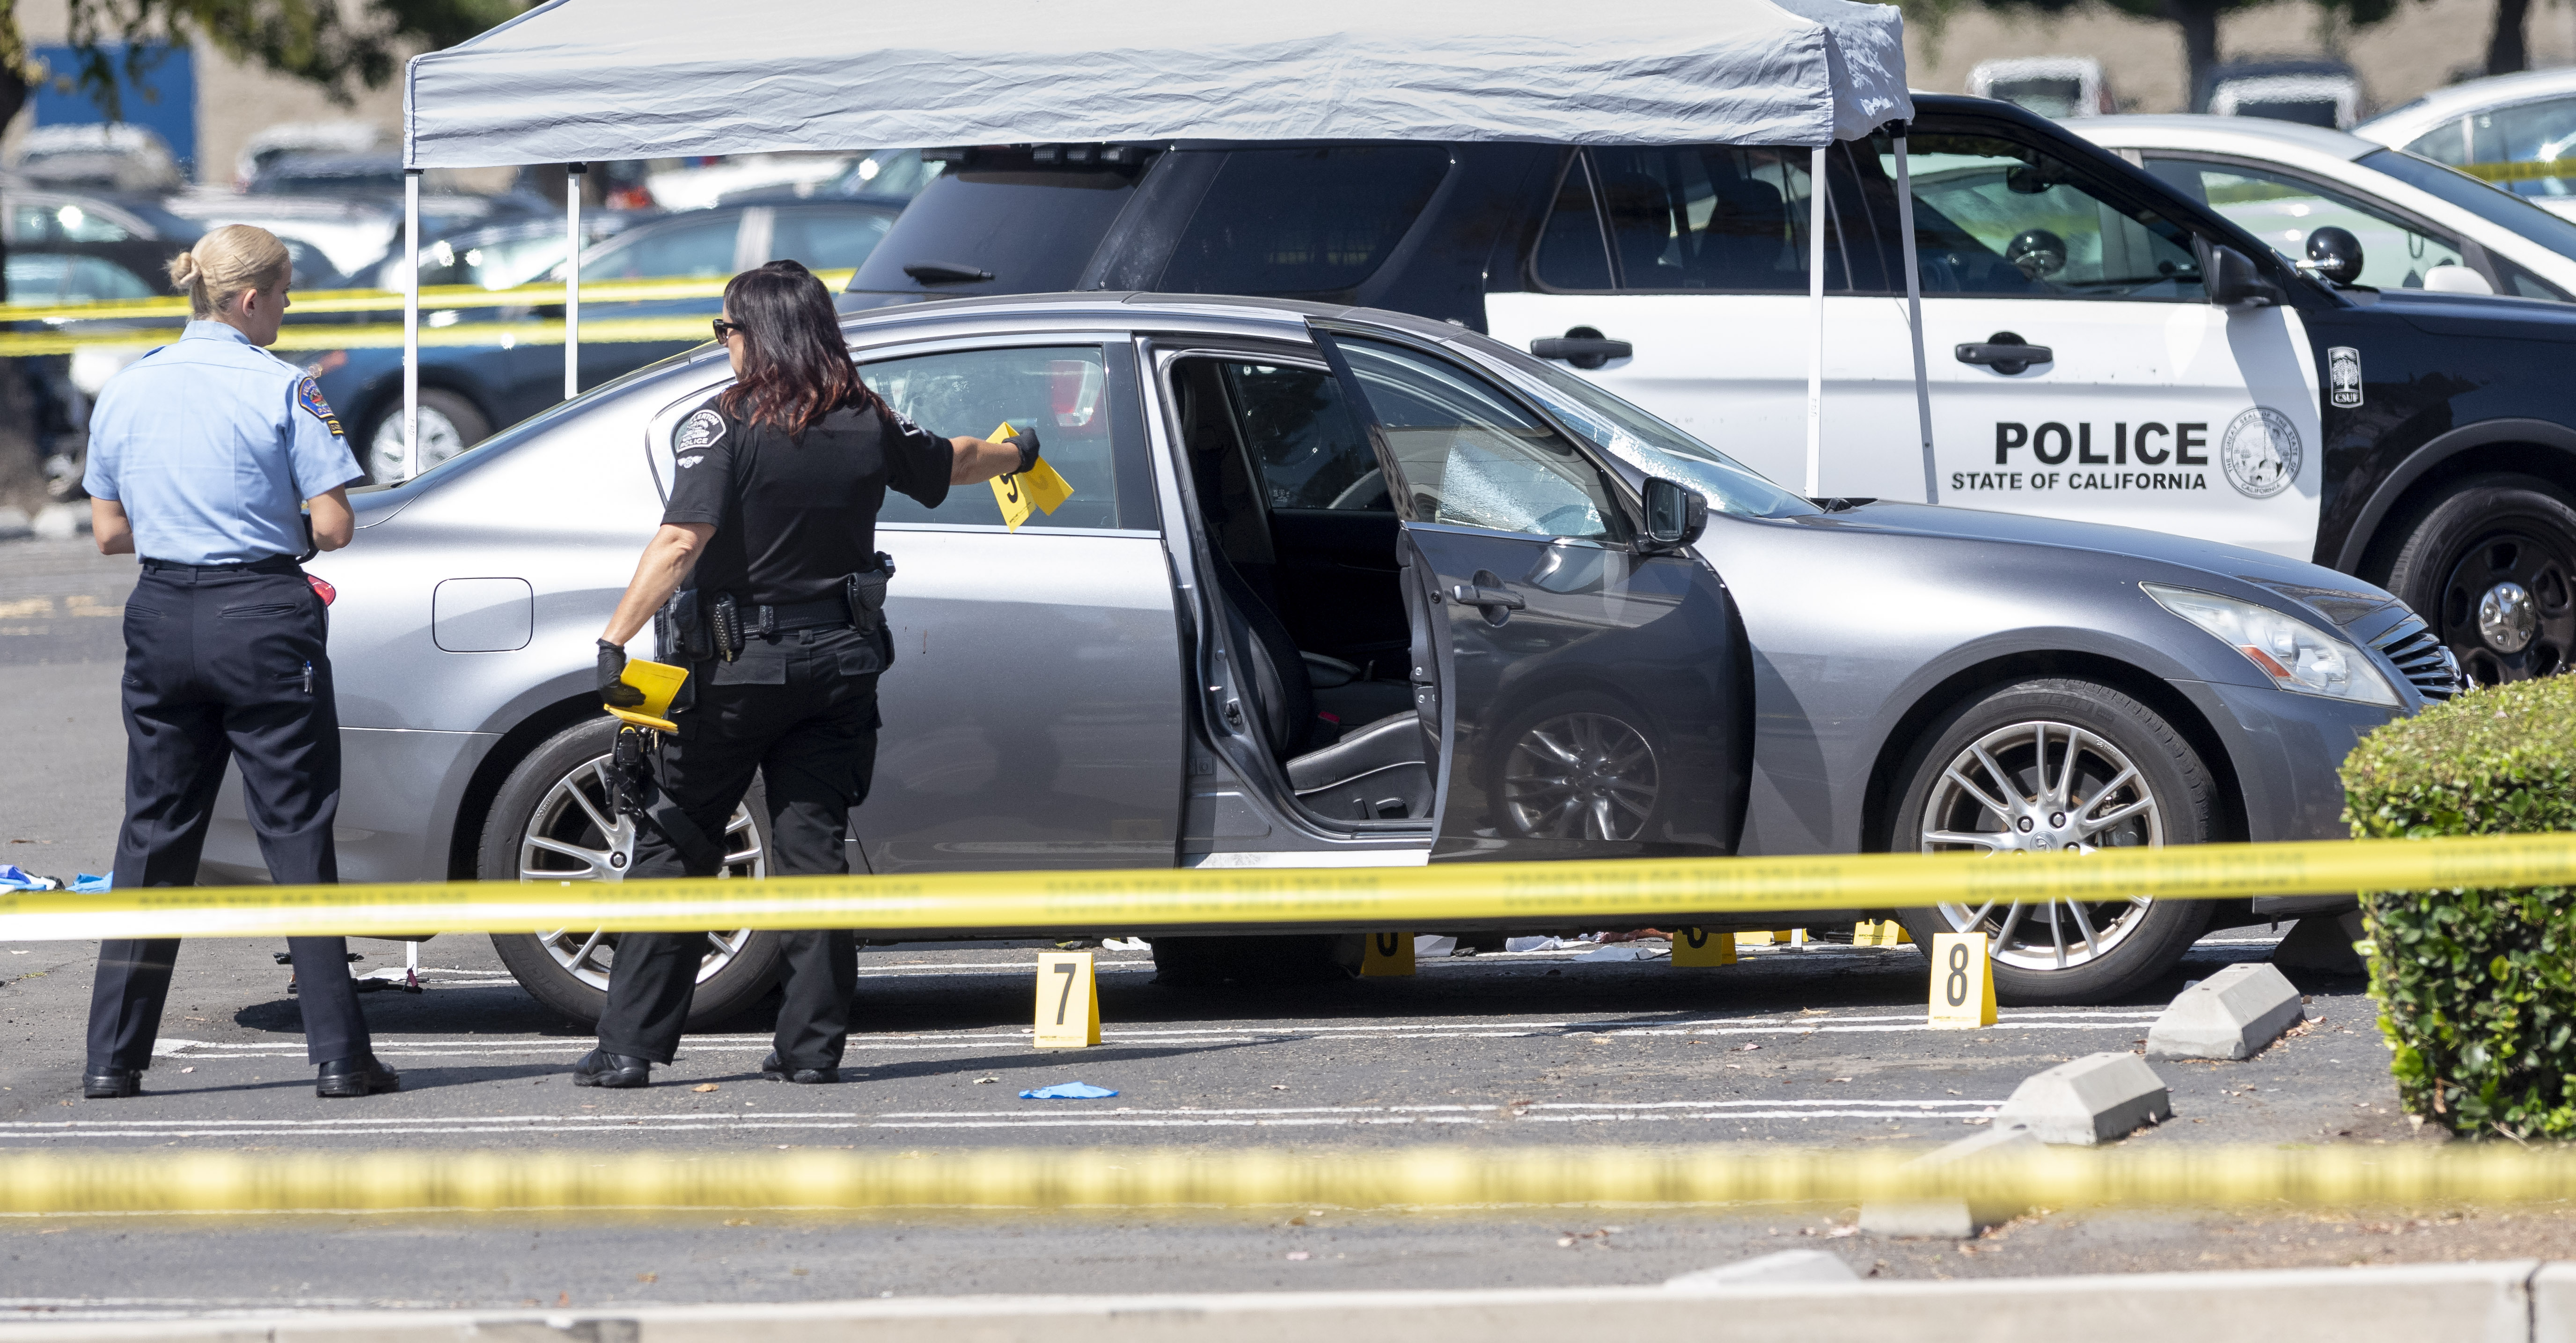 Police investigate a car where a retired Cal State Fullerton administrator was stabbed to death in Fullerton, Calif. on Aug. 19, 2019.